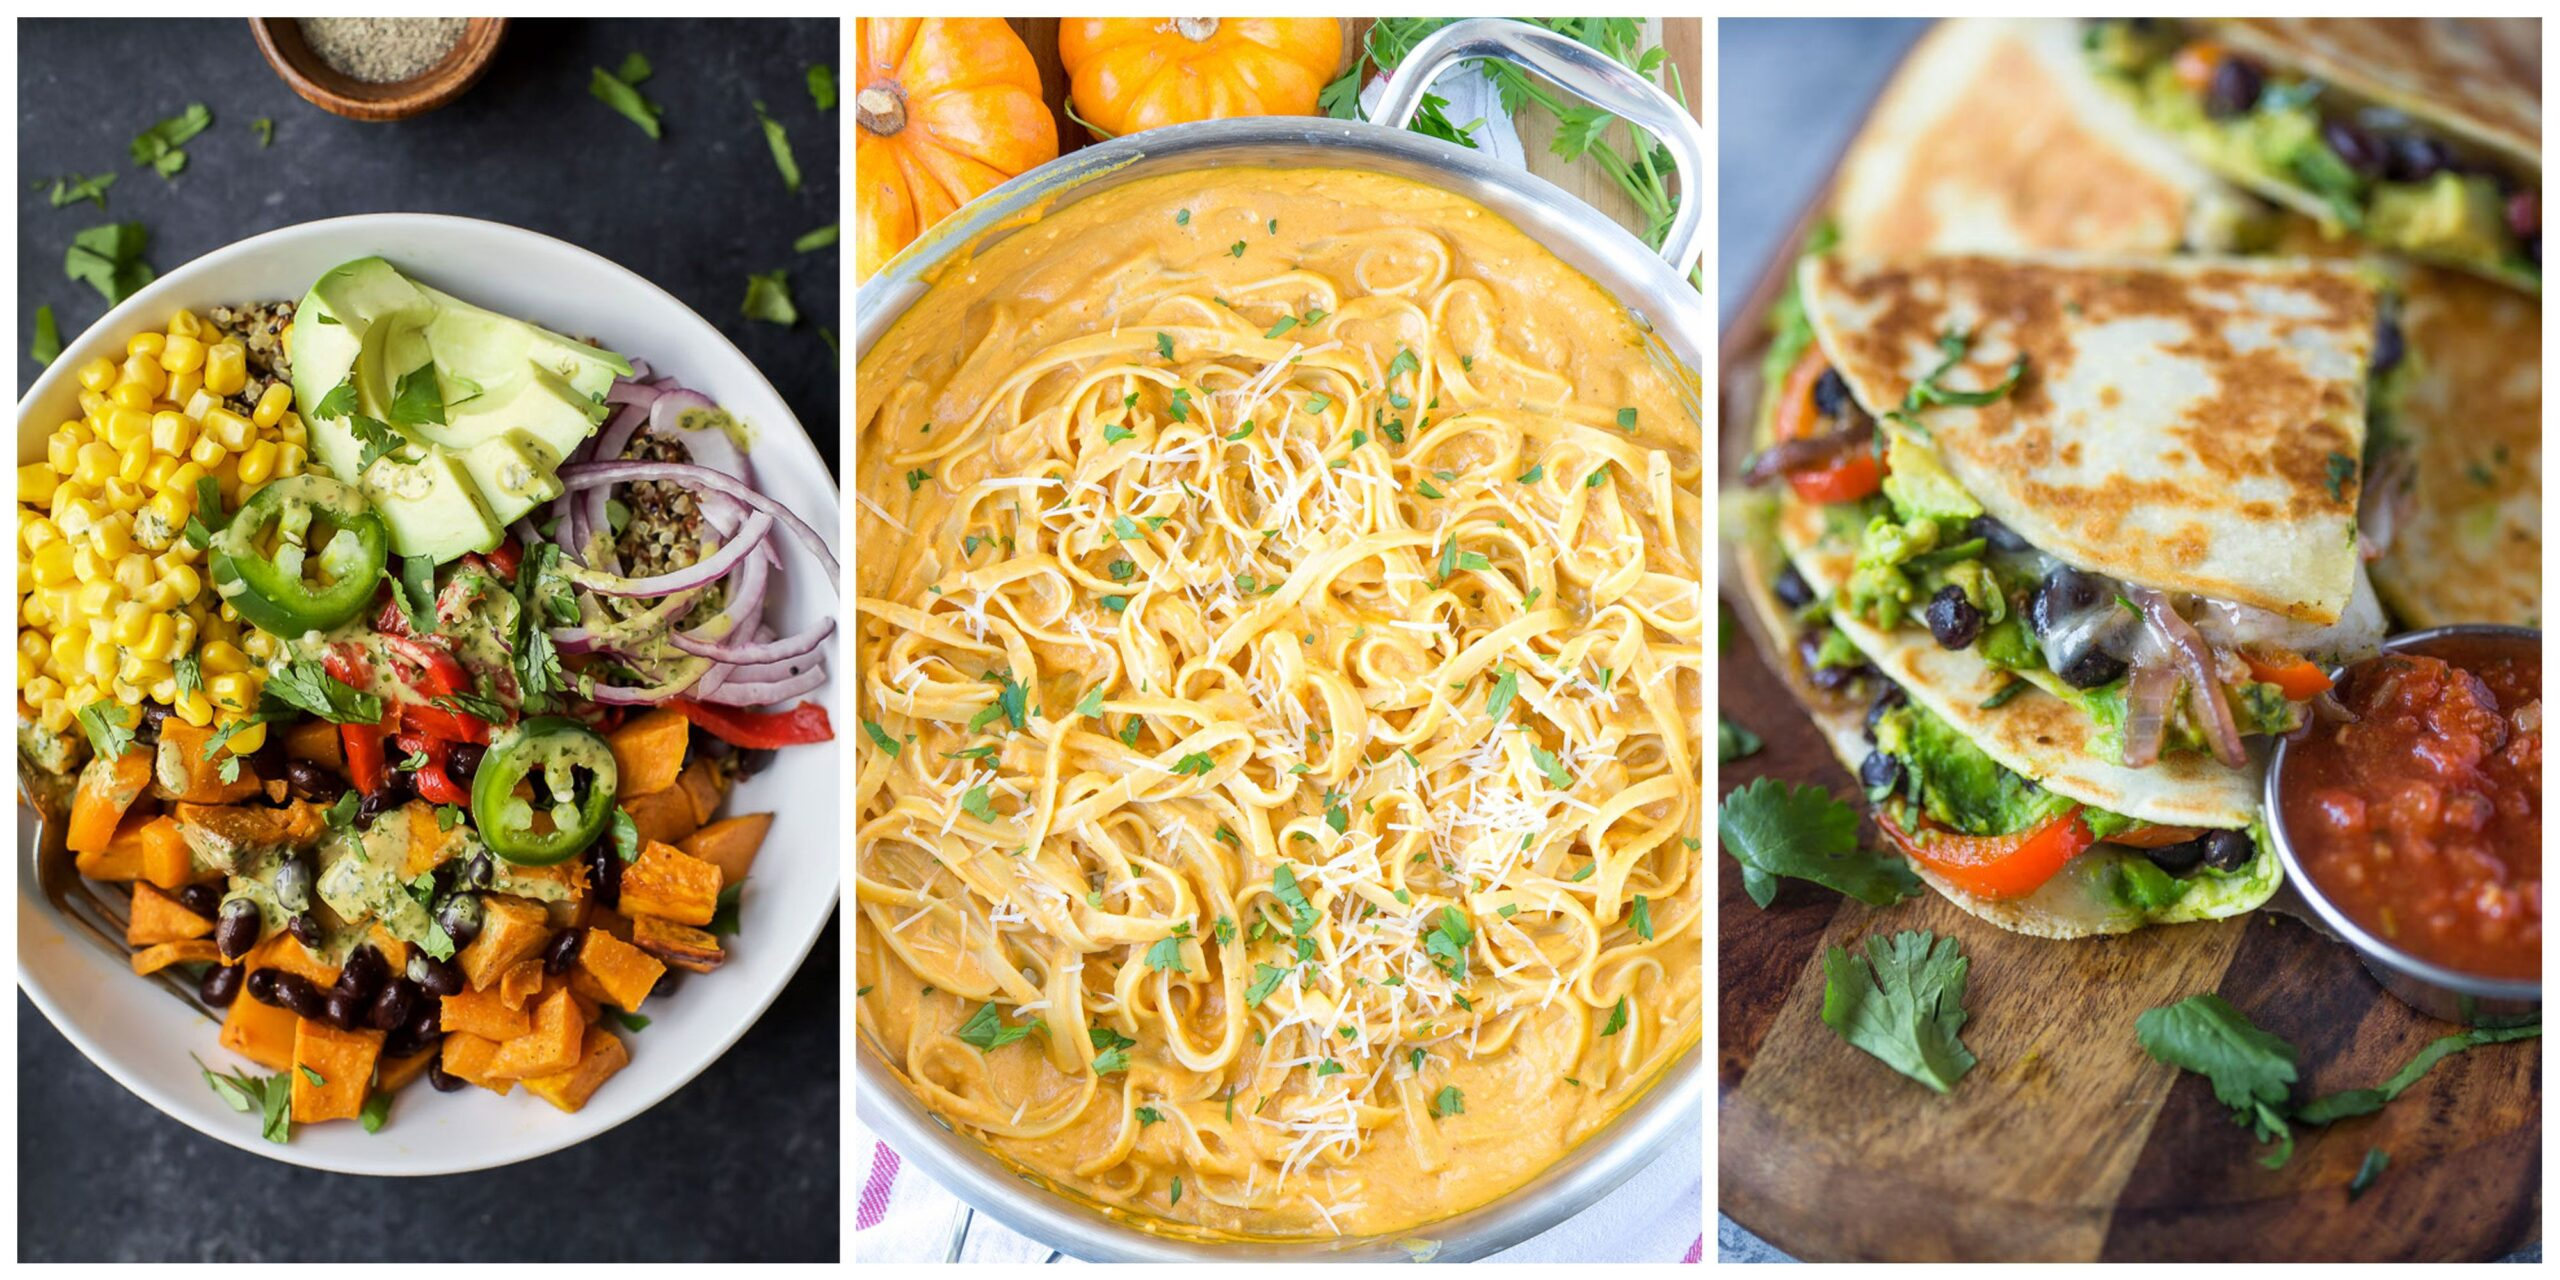 healthy food recipes for family